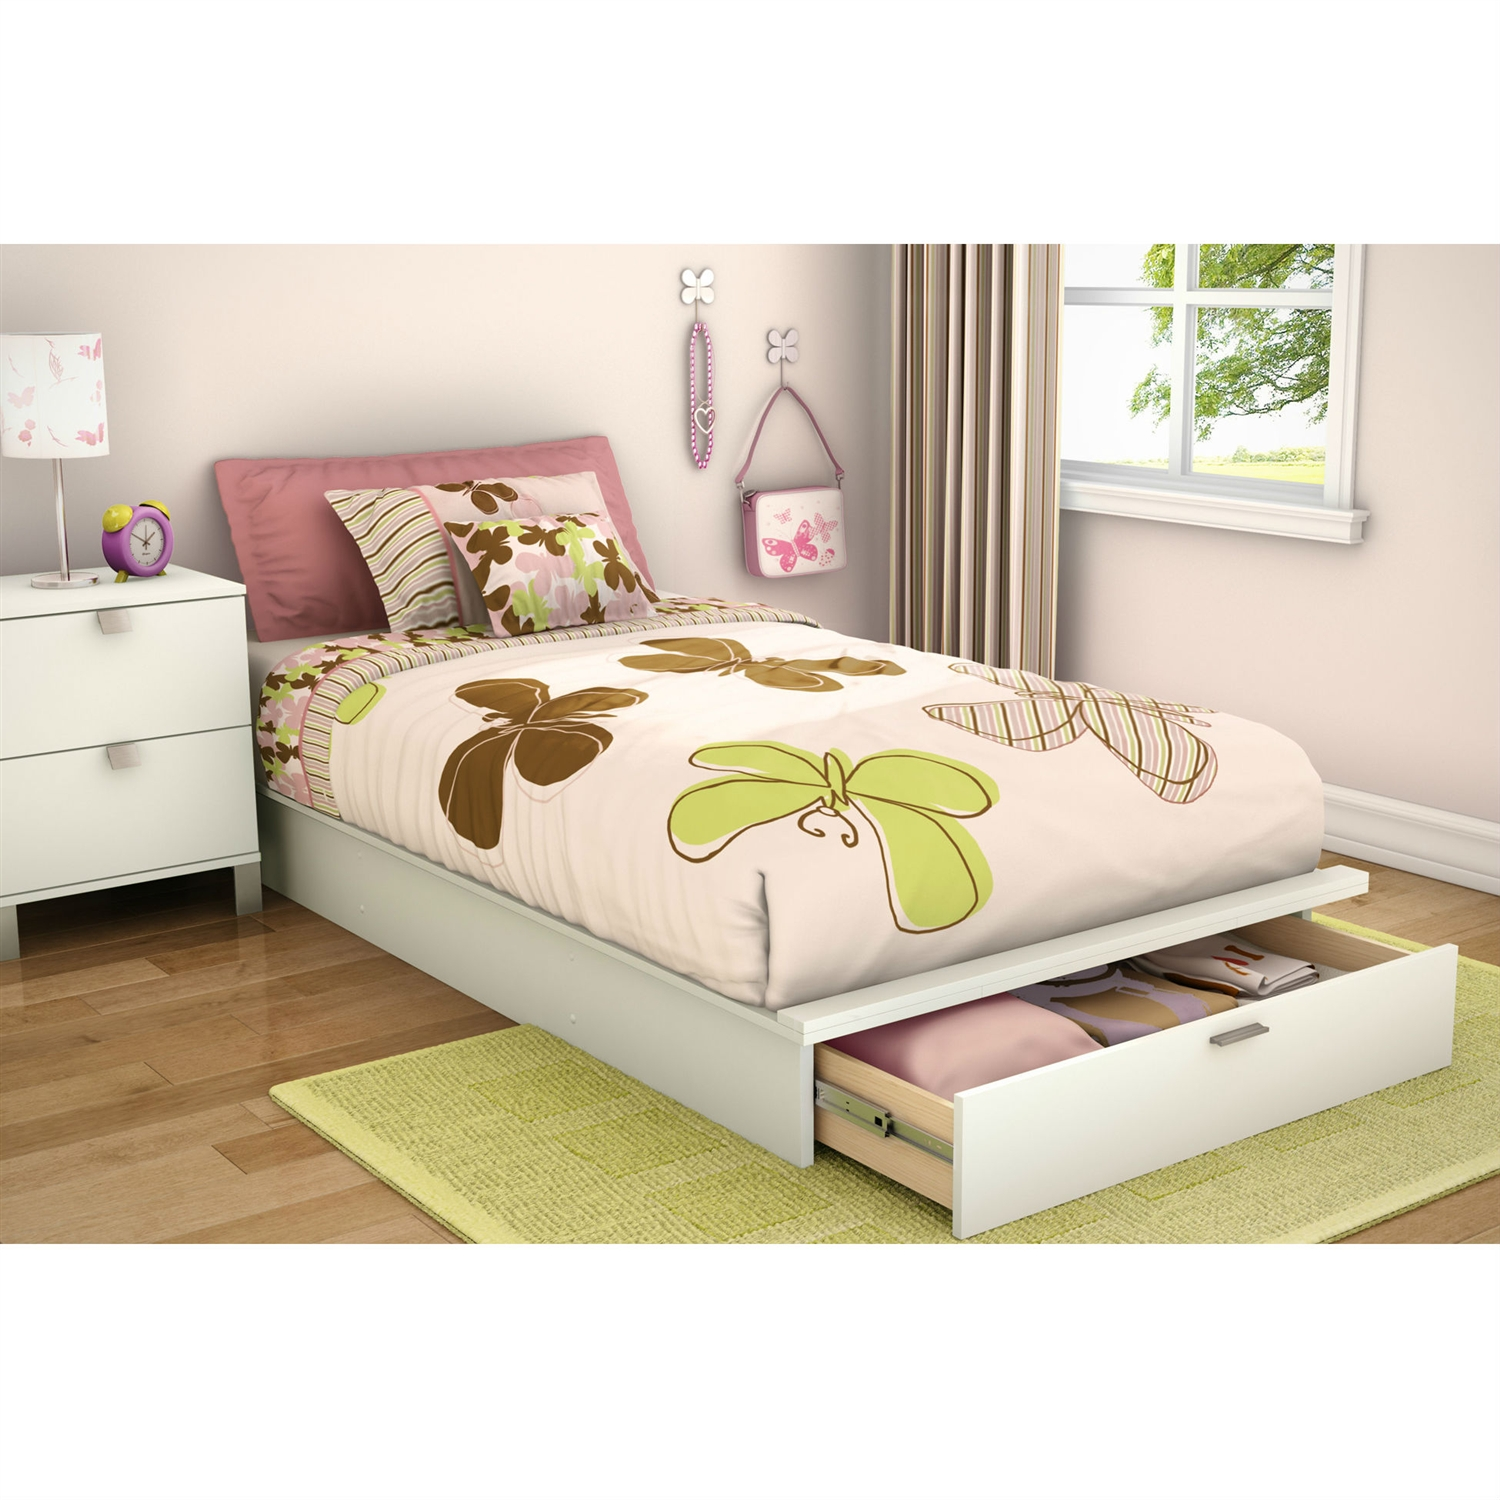 Twin size Contemporary Platform Bed with Storage Drawer in White, STPBWD158 :  This Twin size Contemporary Platform Bed with Storage Drawer in White would be a great addition to your home. It has a pure white finish and is made of non-toxic materials. Bed with laminated top surfaceL Bed Type: Platform Gender: Unisex; Style: Contemporary; Assembly Required: Yes; FSC Certified: Yes; Product Warranty: 5 Year limited warranty; EPP Compliant: Yes; Finish: White; Tools Needed: Hammer, Phillips and standard screwdrivers; Hardware Finish: Matte Silver; CPSIA or CPSC Compliant: Yes; CARB Compliant: Yes; Frame Material: Manufactured Wood Frame; Material Details: Particle board; Hardware Material: Metal; ISTA 3A Certified: Yes; General Conformity Certificate: Yes; Also Suitable for Adults: Yes; Number of Drawers: 1; Underbed Storage: Yes. Eco-Friendly: Yes; Product Care: Clean with a soft slightly damp cloth; Avoid sun exposure and chemical products. Country of Manufacture: Canada. Overall Height - Top to Bottom: 8.75 Inches; Overall Width - Side to Side: 43 Inches; Overall Depth - Front to Back: 78.5 Inches.